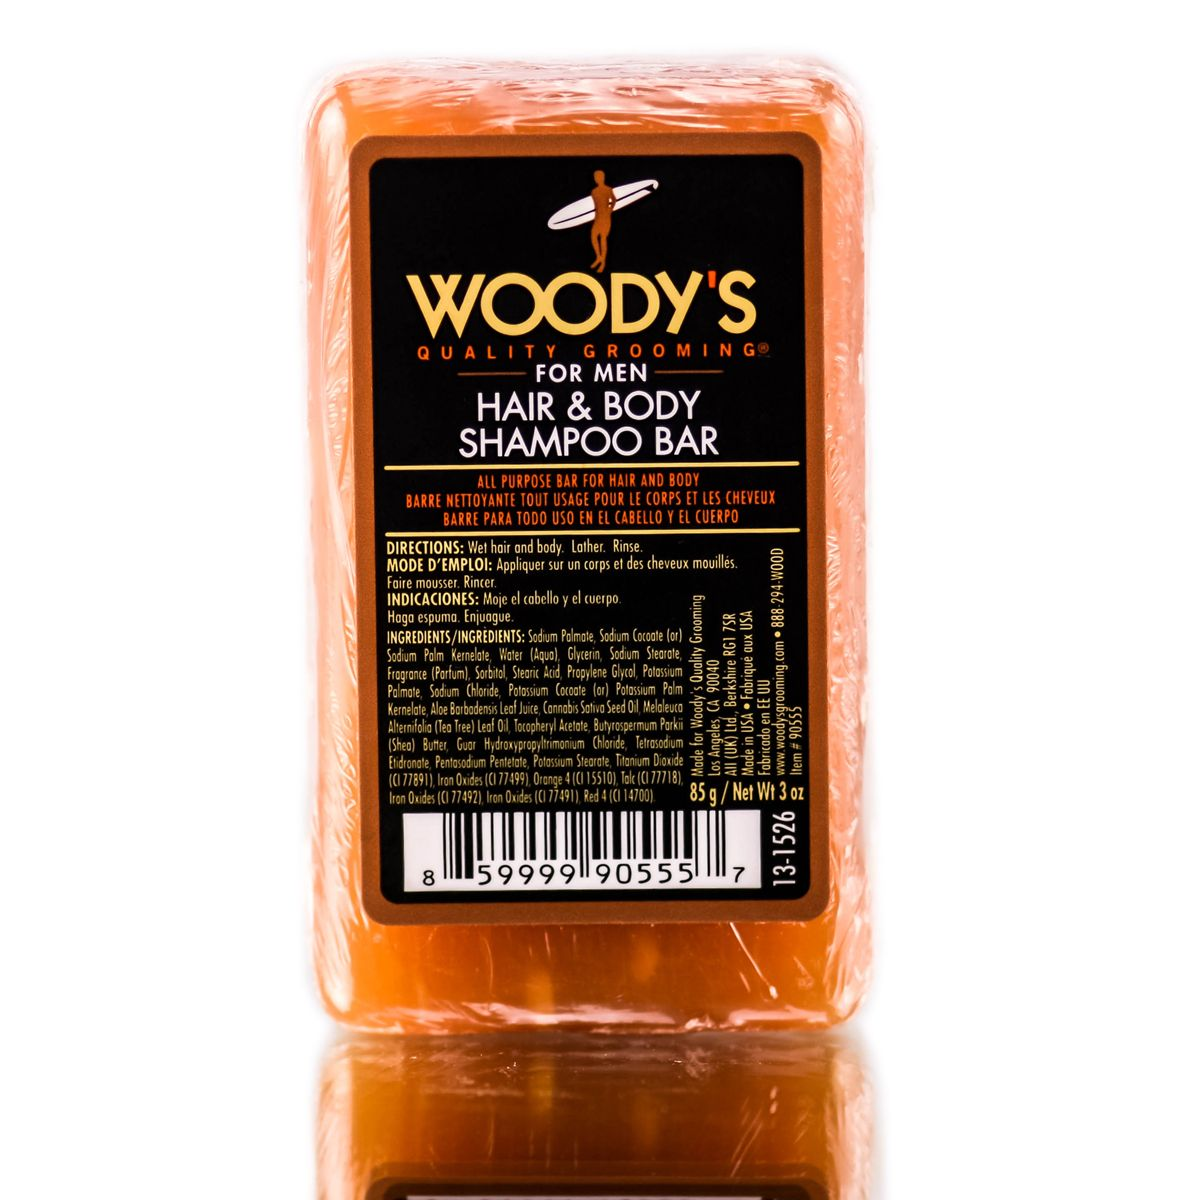 Woody's Meat & Potatoes Hair & Body Shampoo Bar 3.0 oz